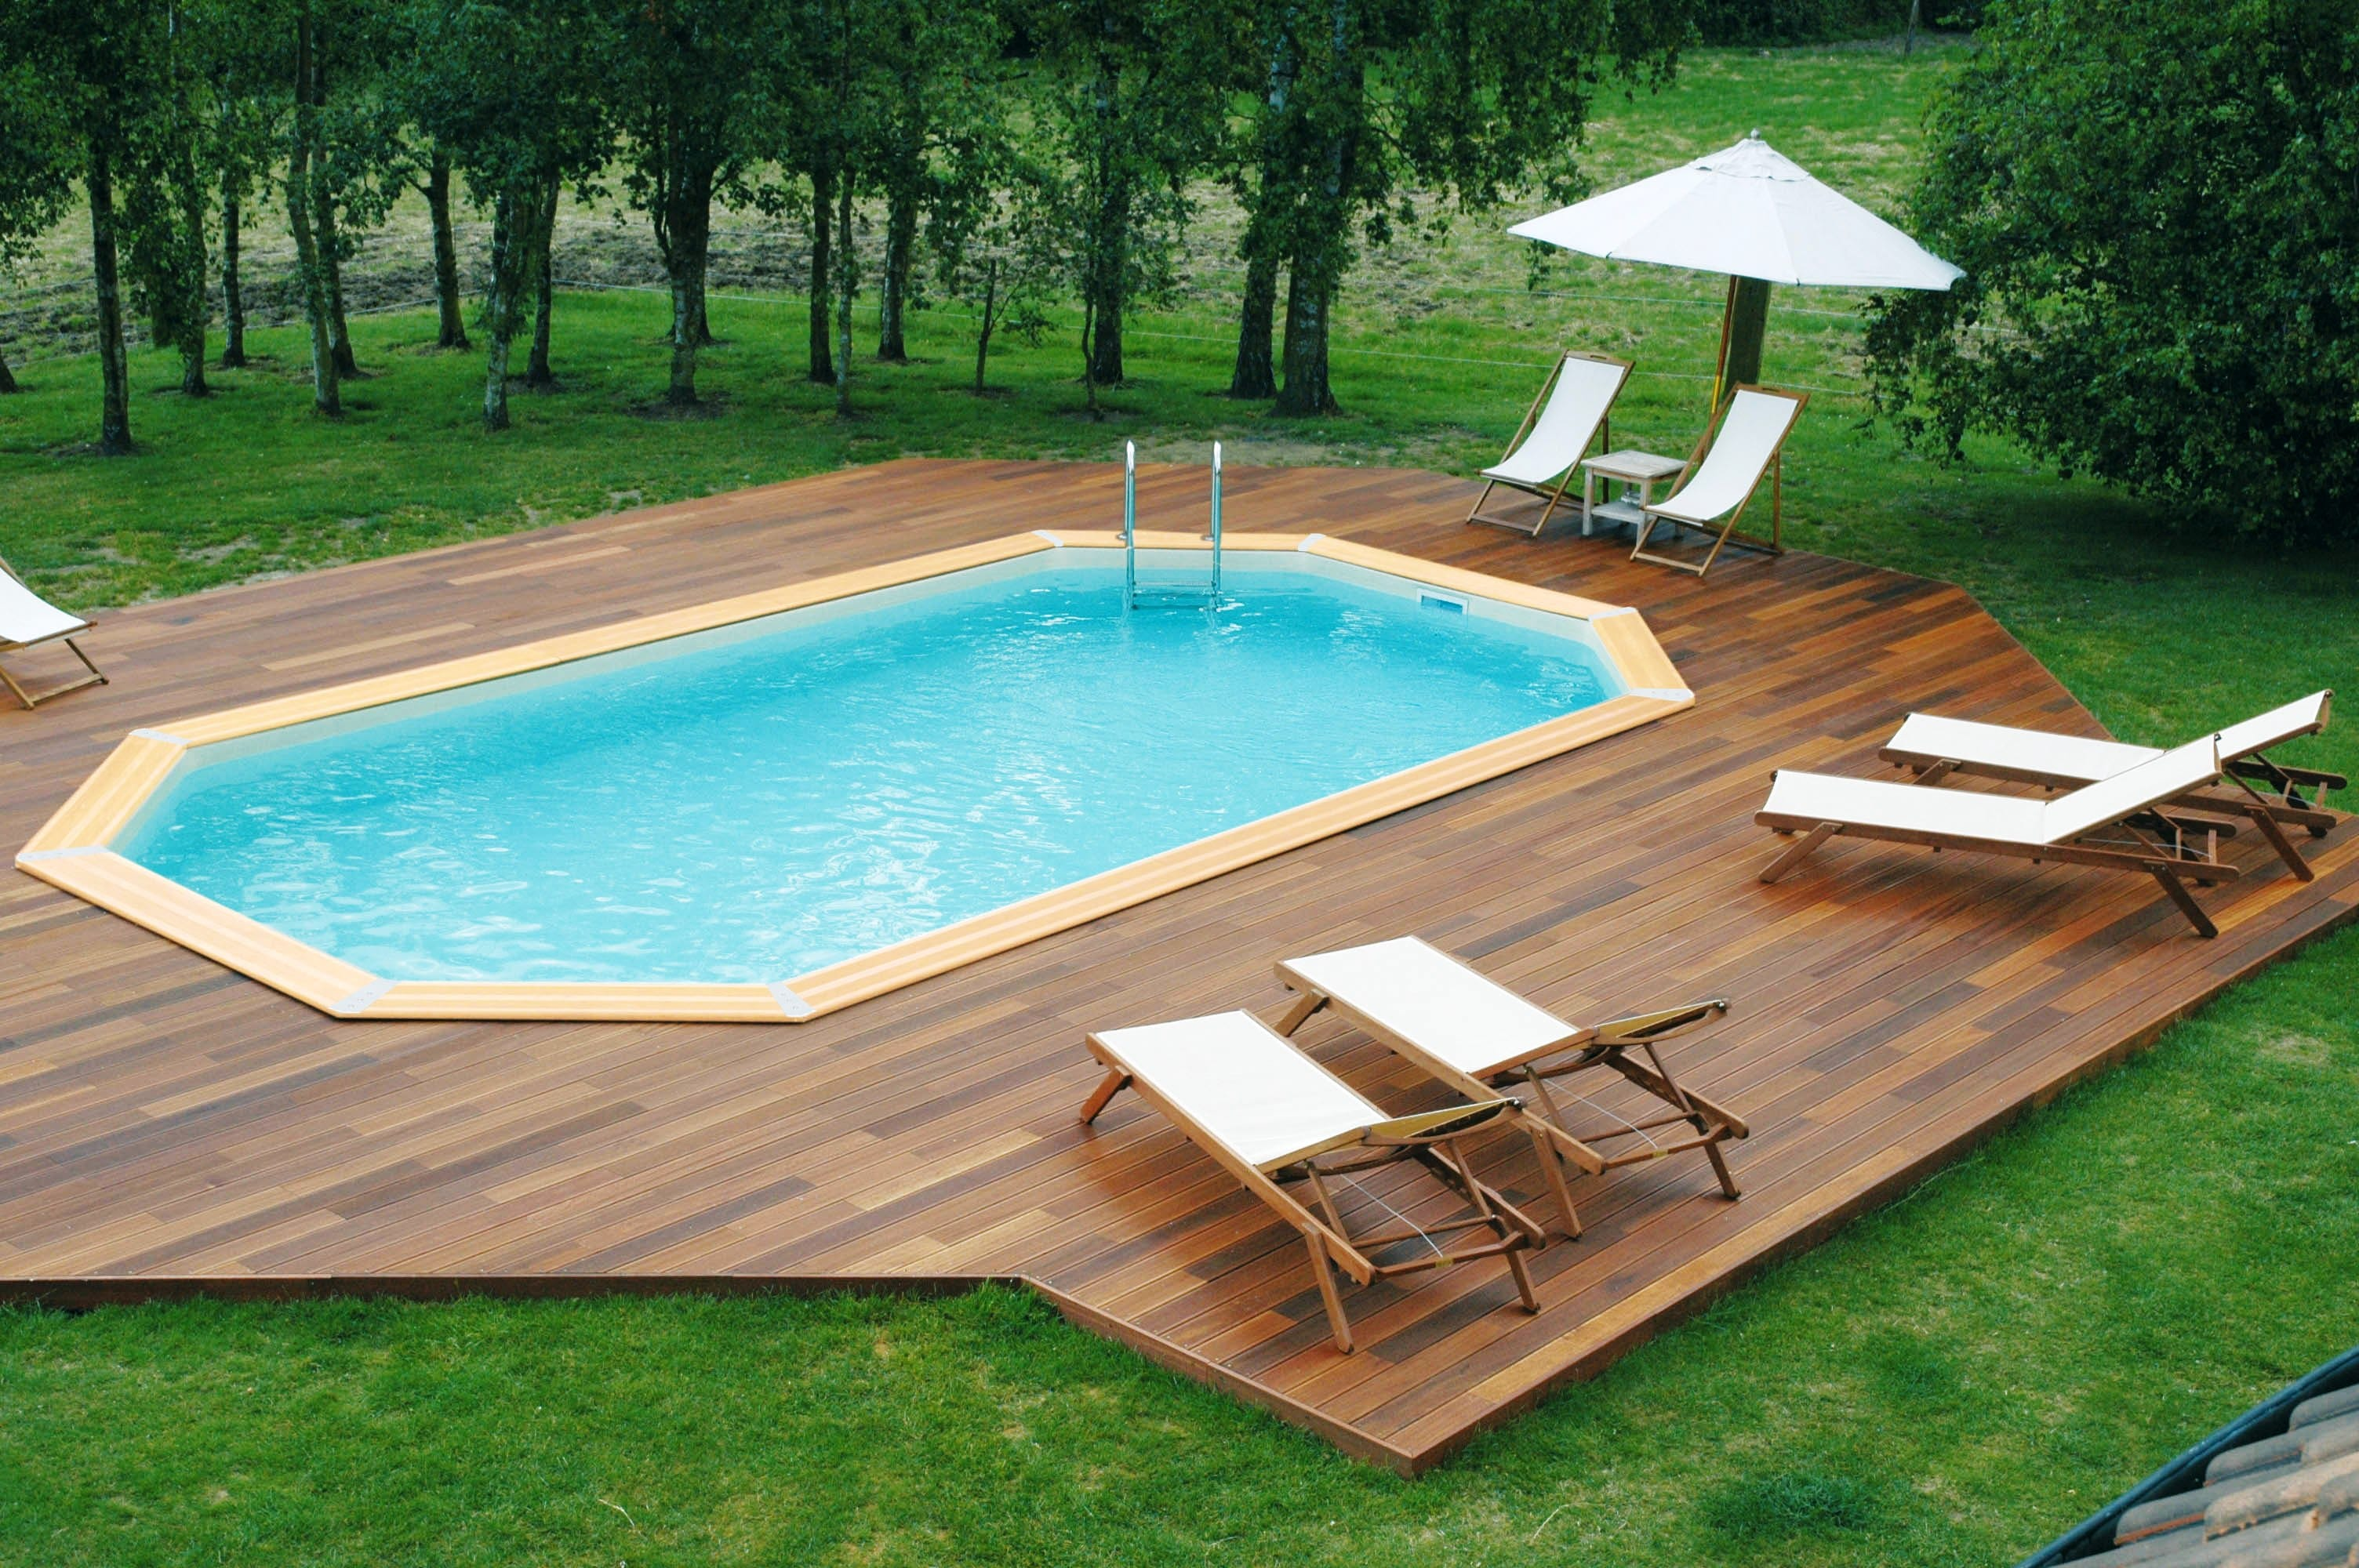 Piscine spa sauna bonnin for Piscine semi enterree bois